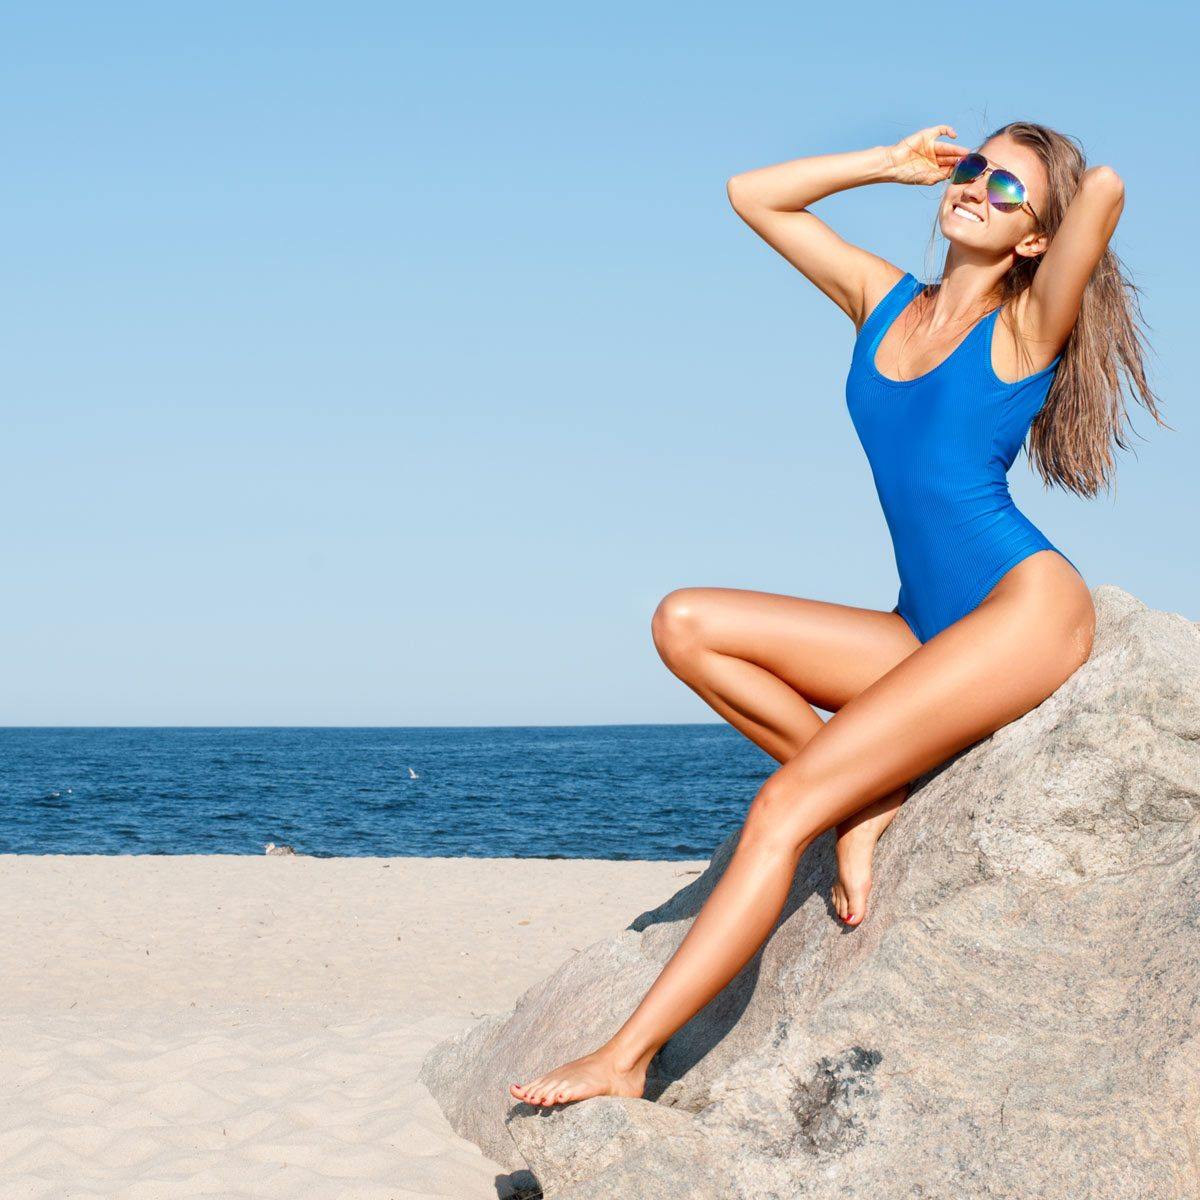 Model-posing-in-a-blue-swimsuit-on-a-rock-by-the-sea